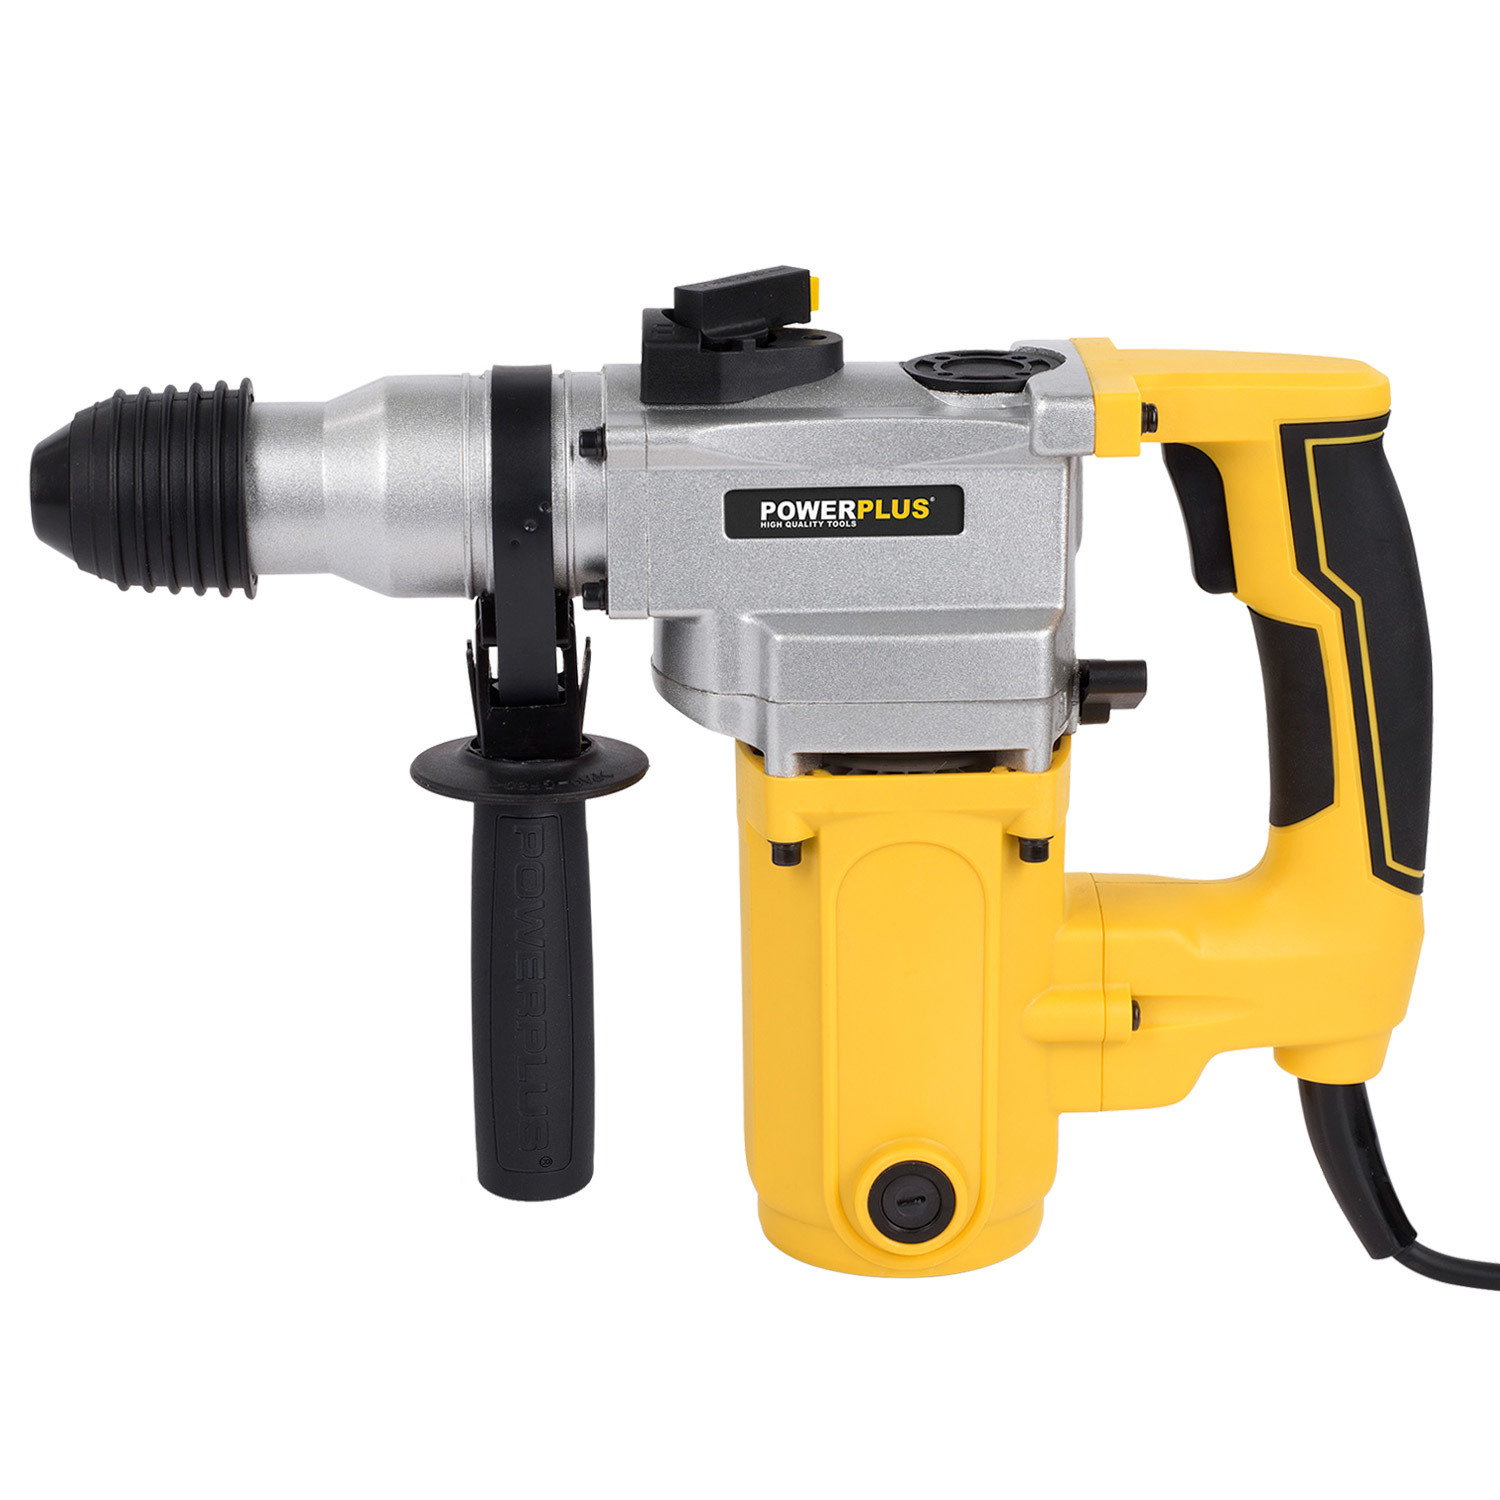 sds bohrhammer bohrmaschine schlagbohrhammer mei elhammer 39 hammer drill 39 1500 w ebay. Black Bedroom Furniture Sets. Home Design Ideas